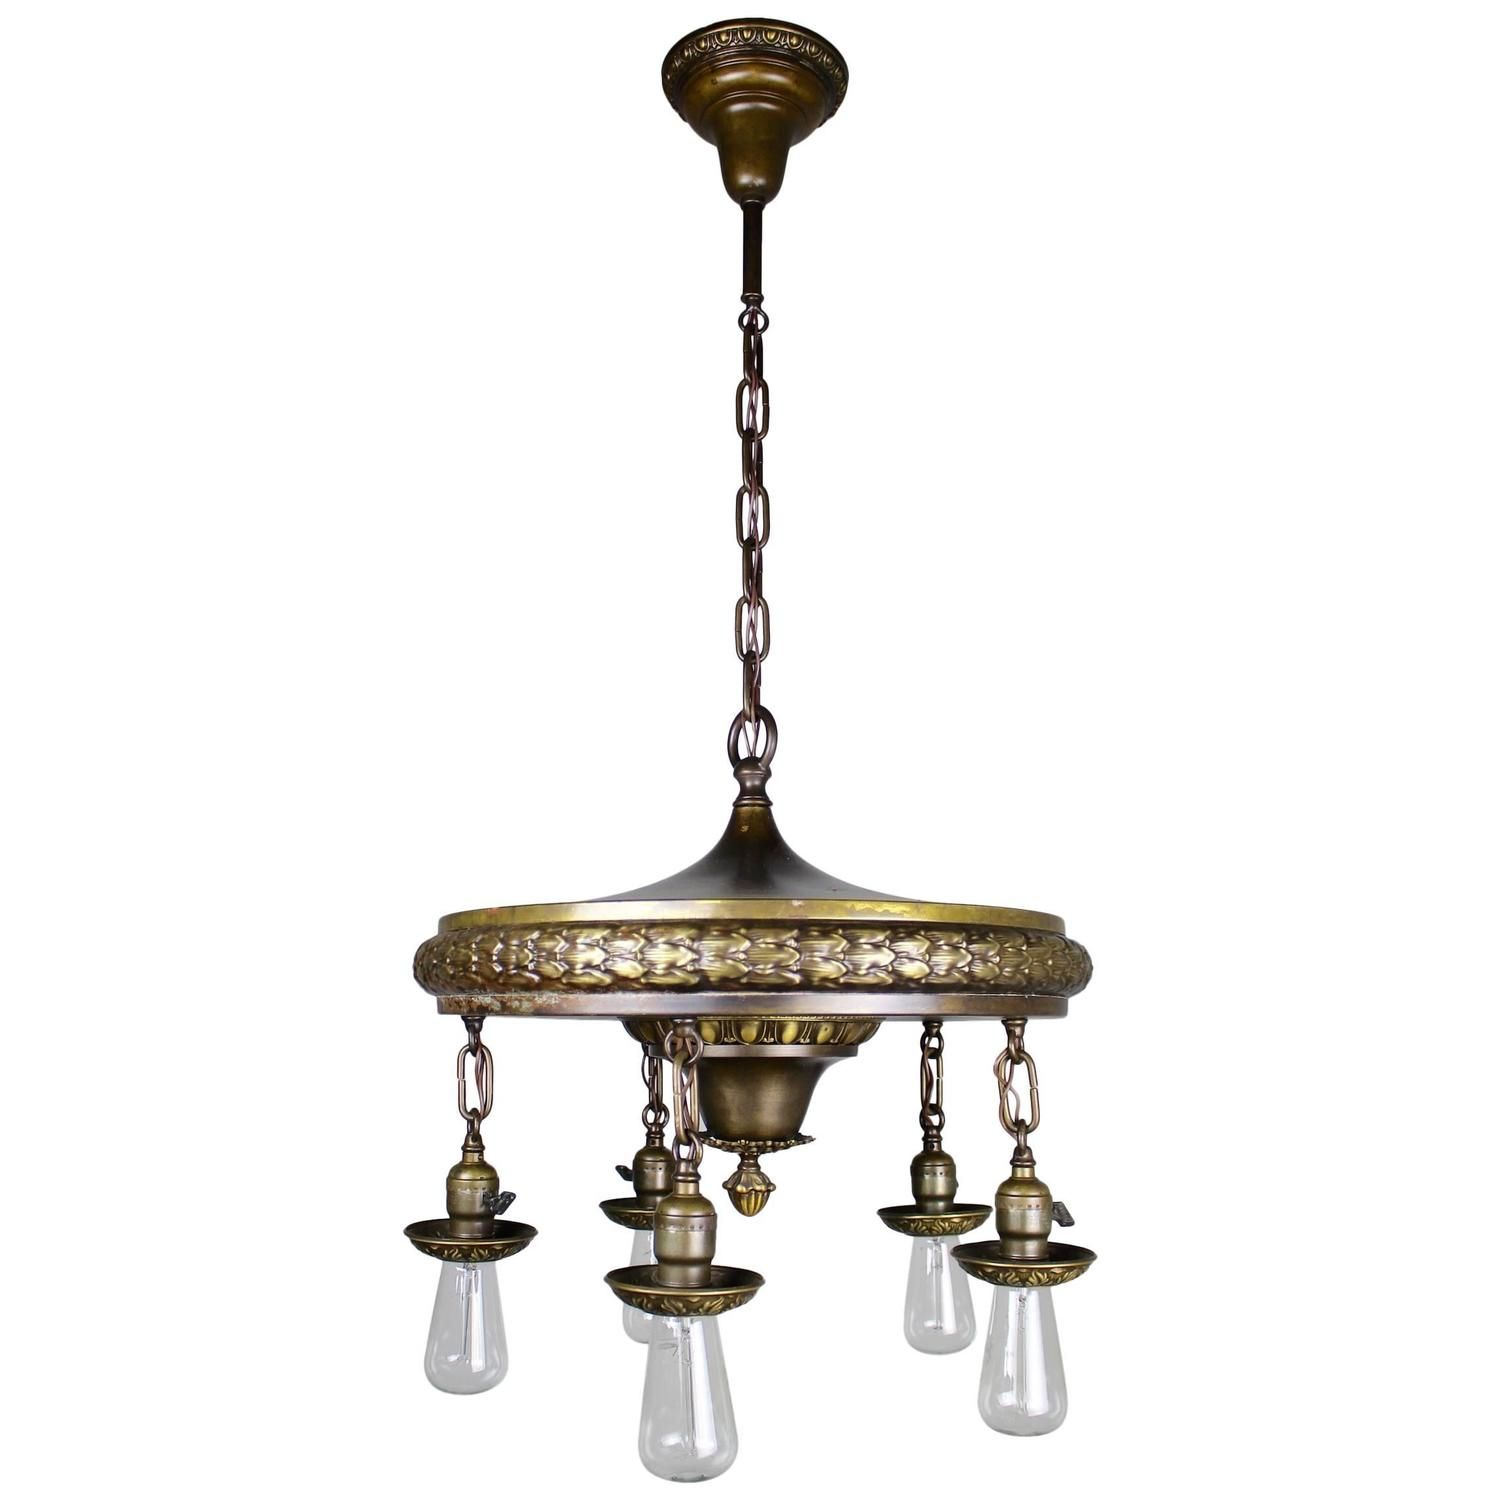 1920s Five Light Neoclical Revival Dining Room Fixture From A Unique Collection Of Antique